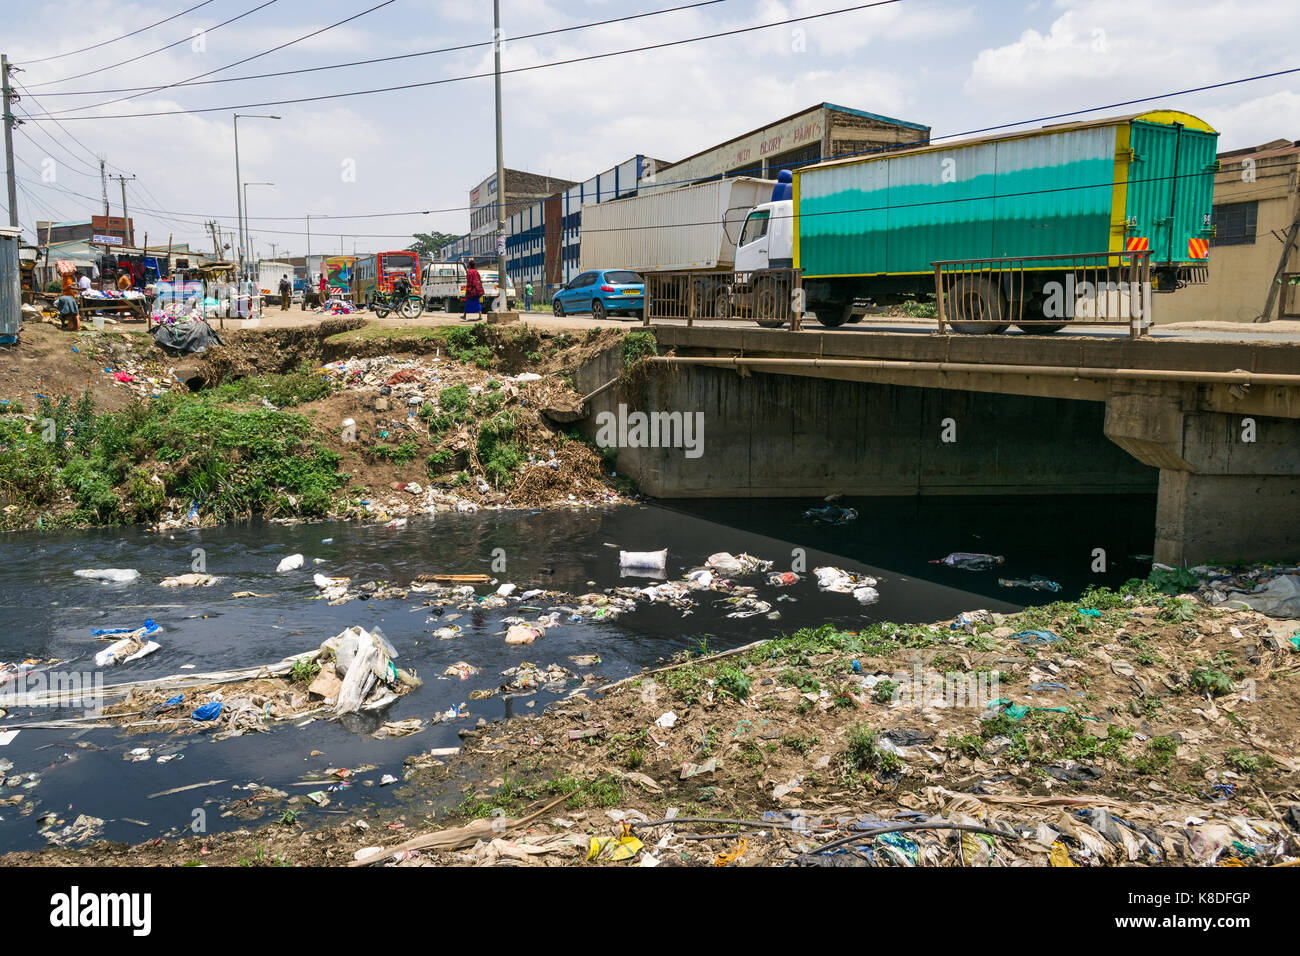 Enterprise road bridge crosses the Ngong river which is polluted with rubbish, plastic waste and garbage, Nairobi, - Stock Image